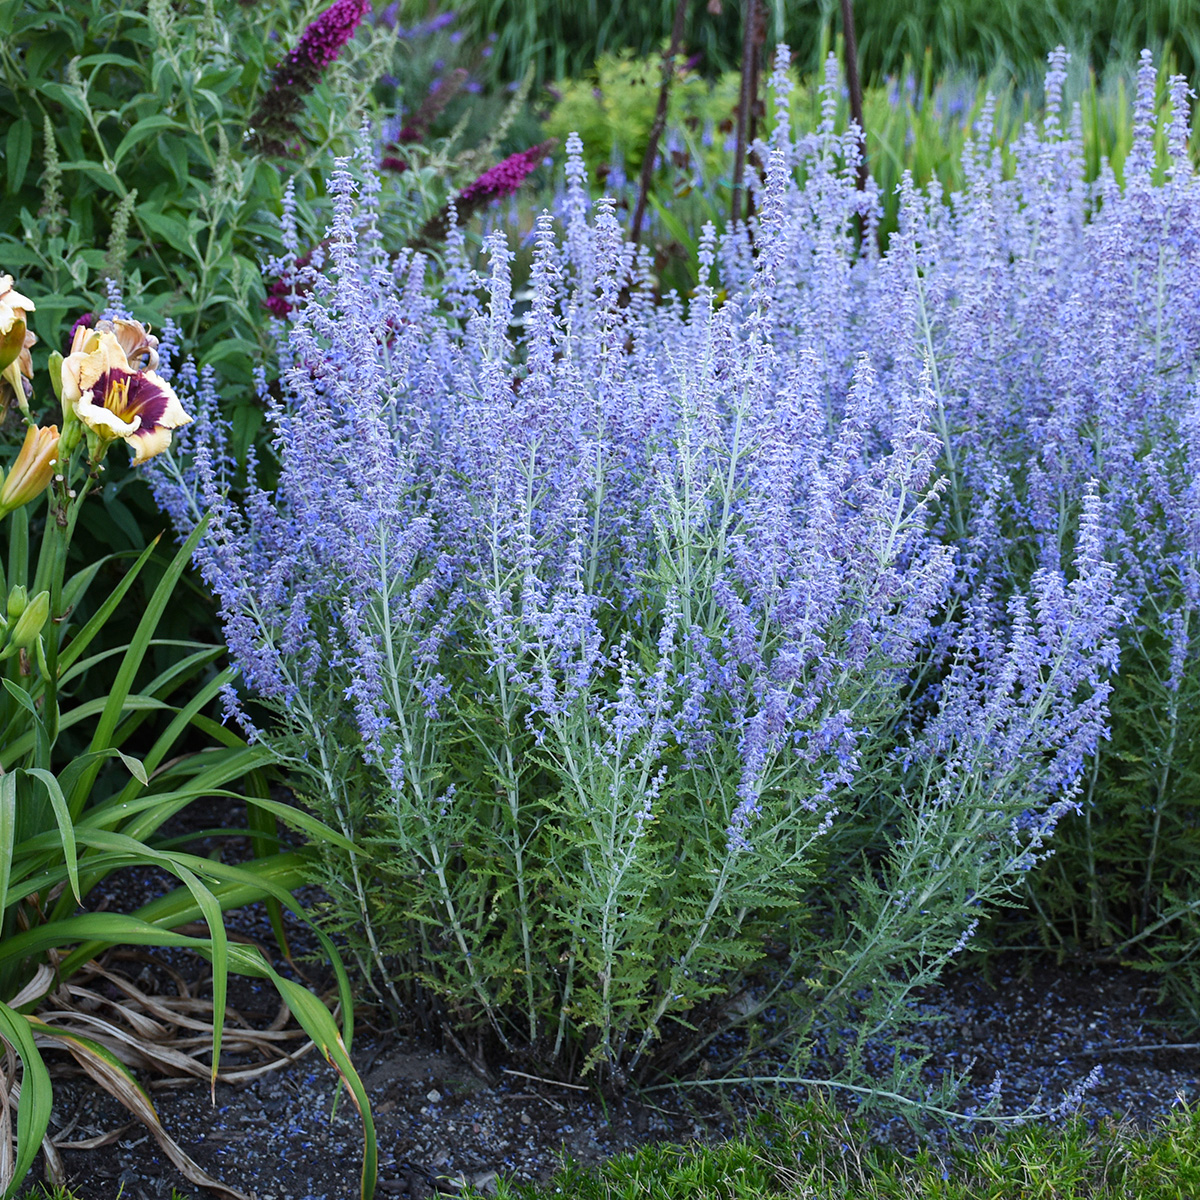 'Blue Jean Baby' Russian sage (photo credit: Walter's Gardens, Inc.)